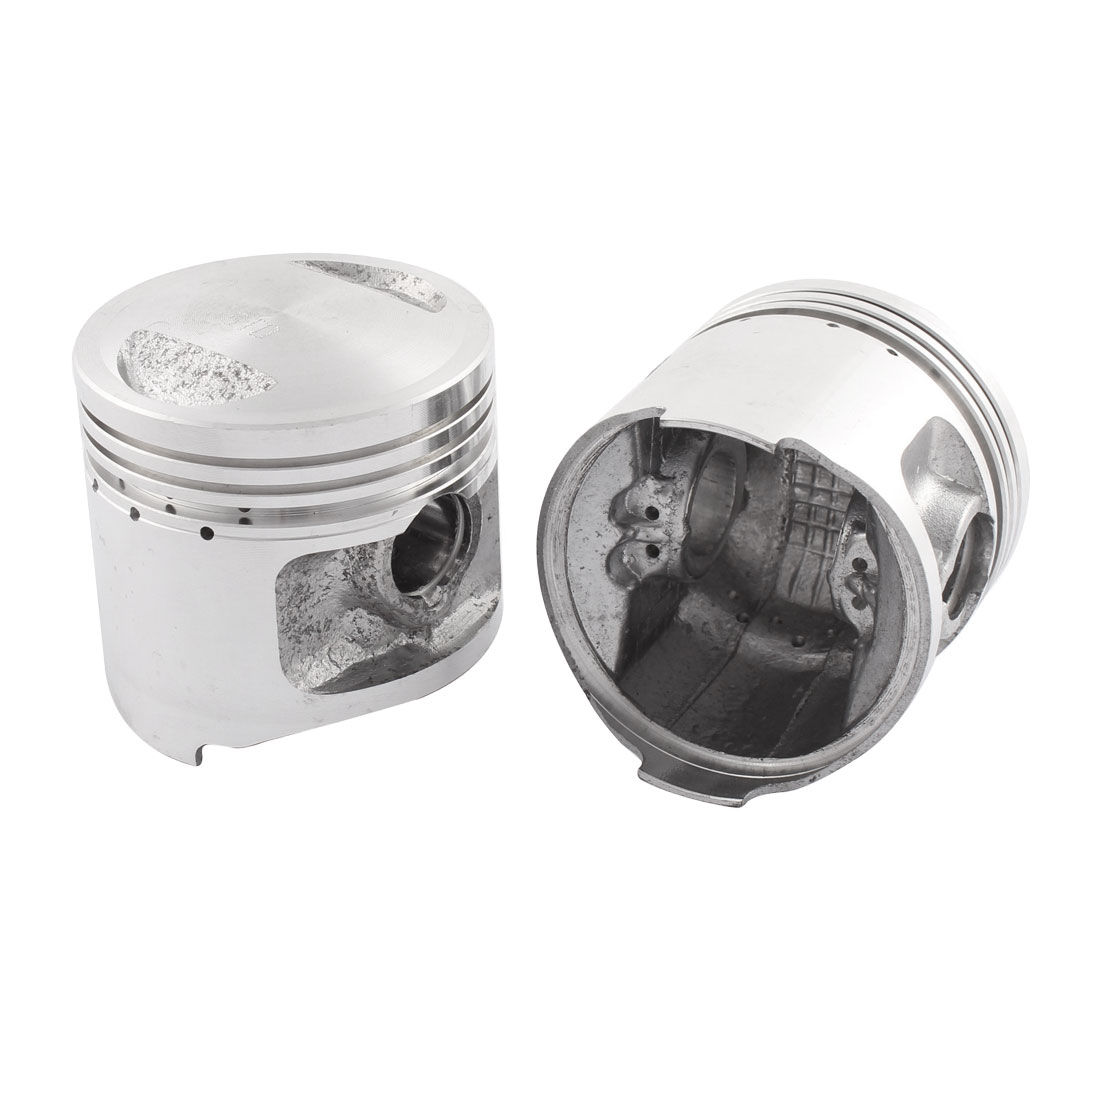 2 Pcs 56mm Dia Aluminum Alloy Engine Piston Sliver Tone for CG125 Motorcycle